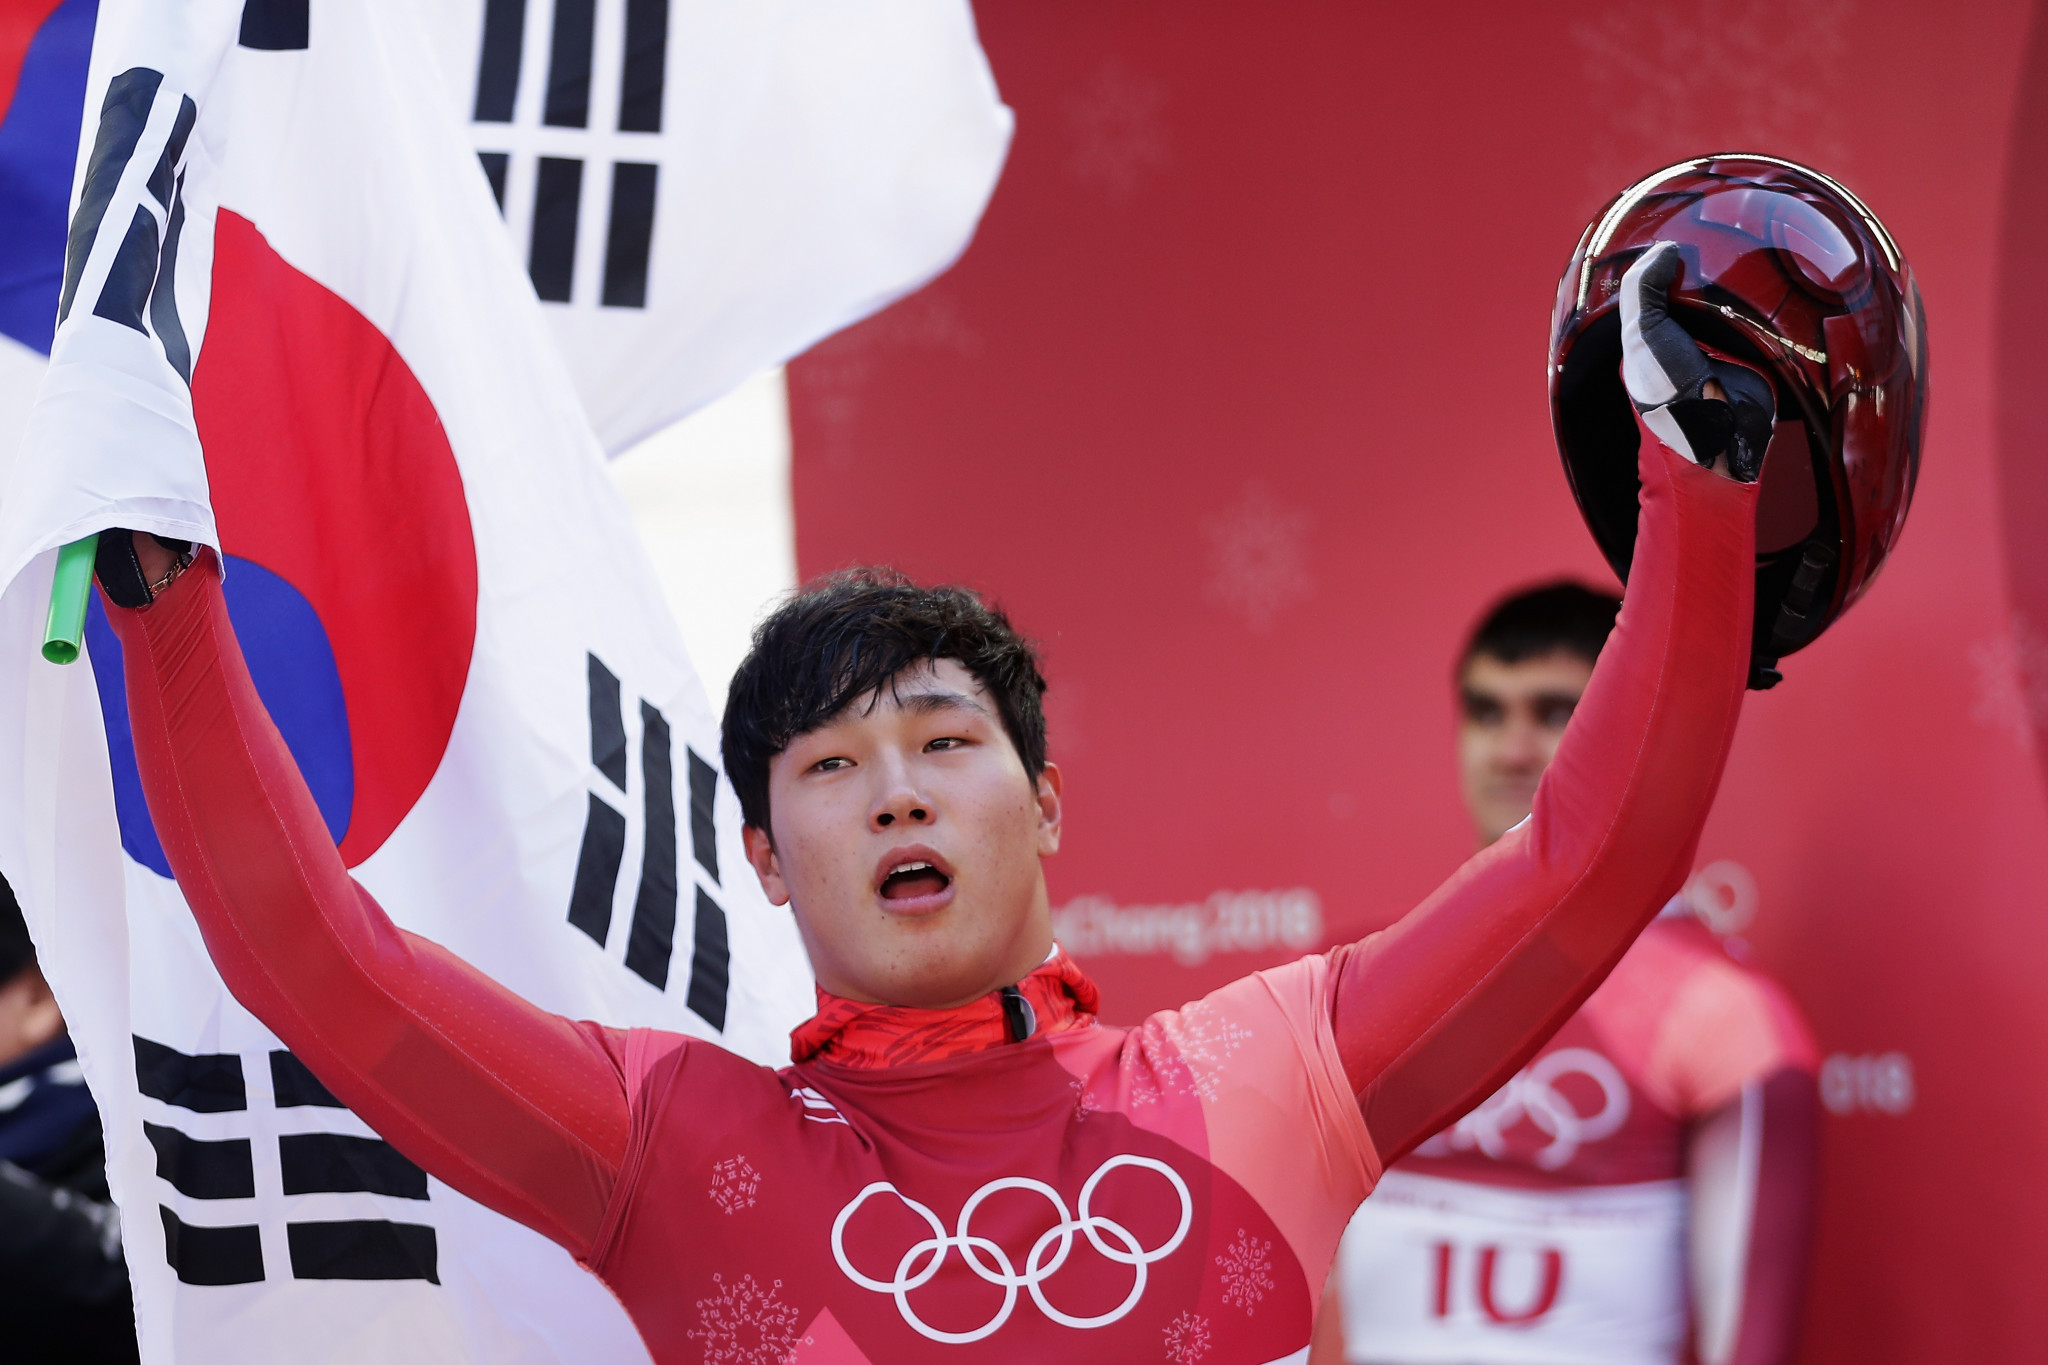 Yun secures hosts South Korea's second gold medal of Pyeongchang 2018 with men's skeleton triumph